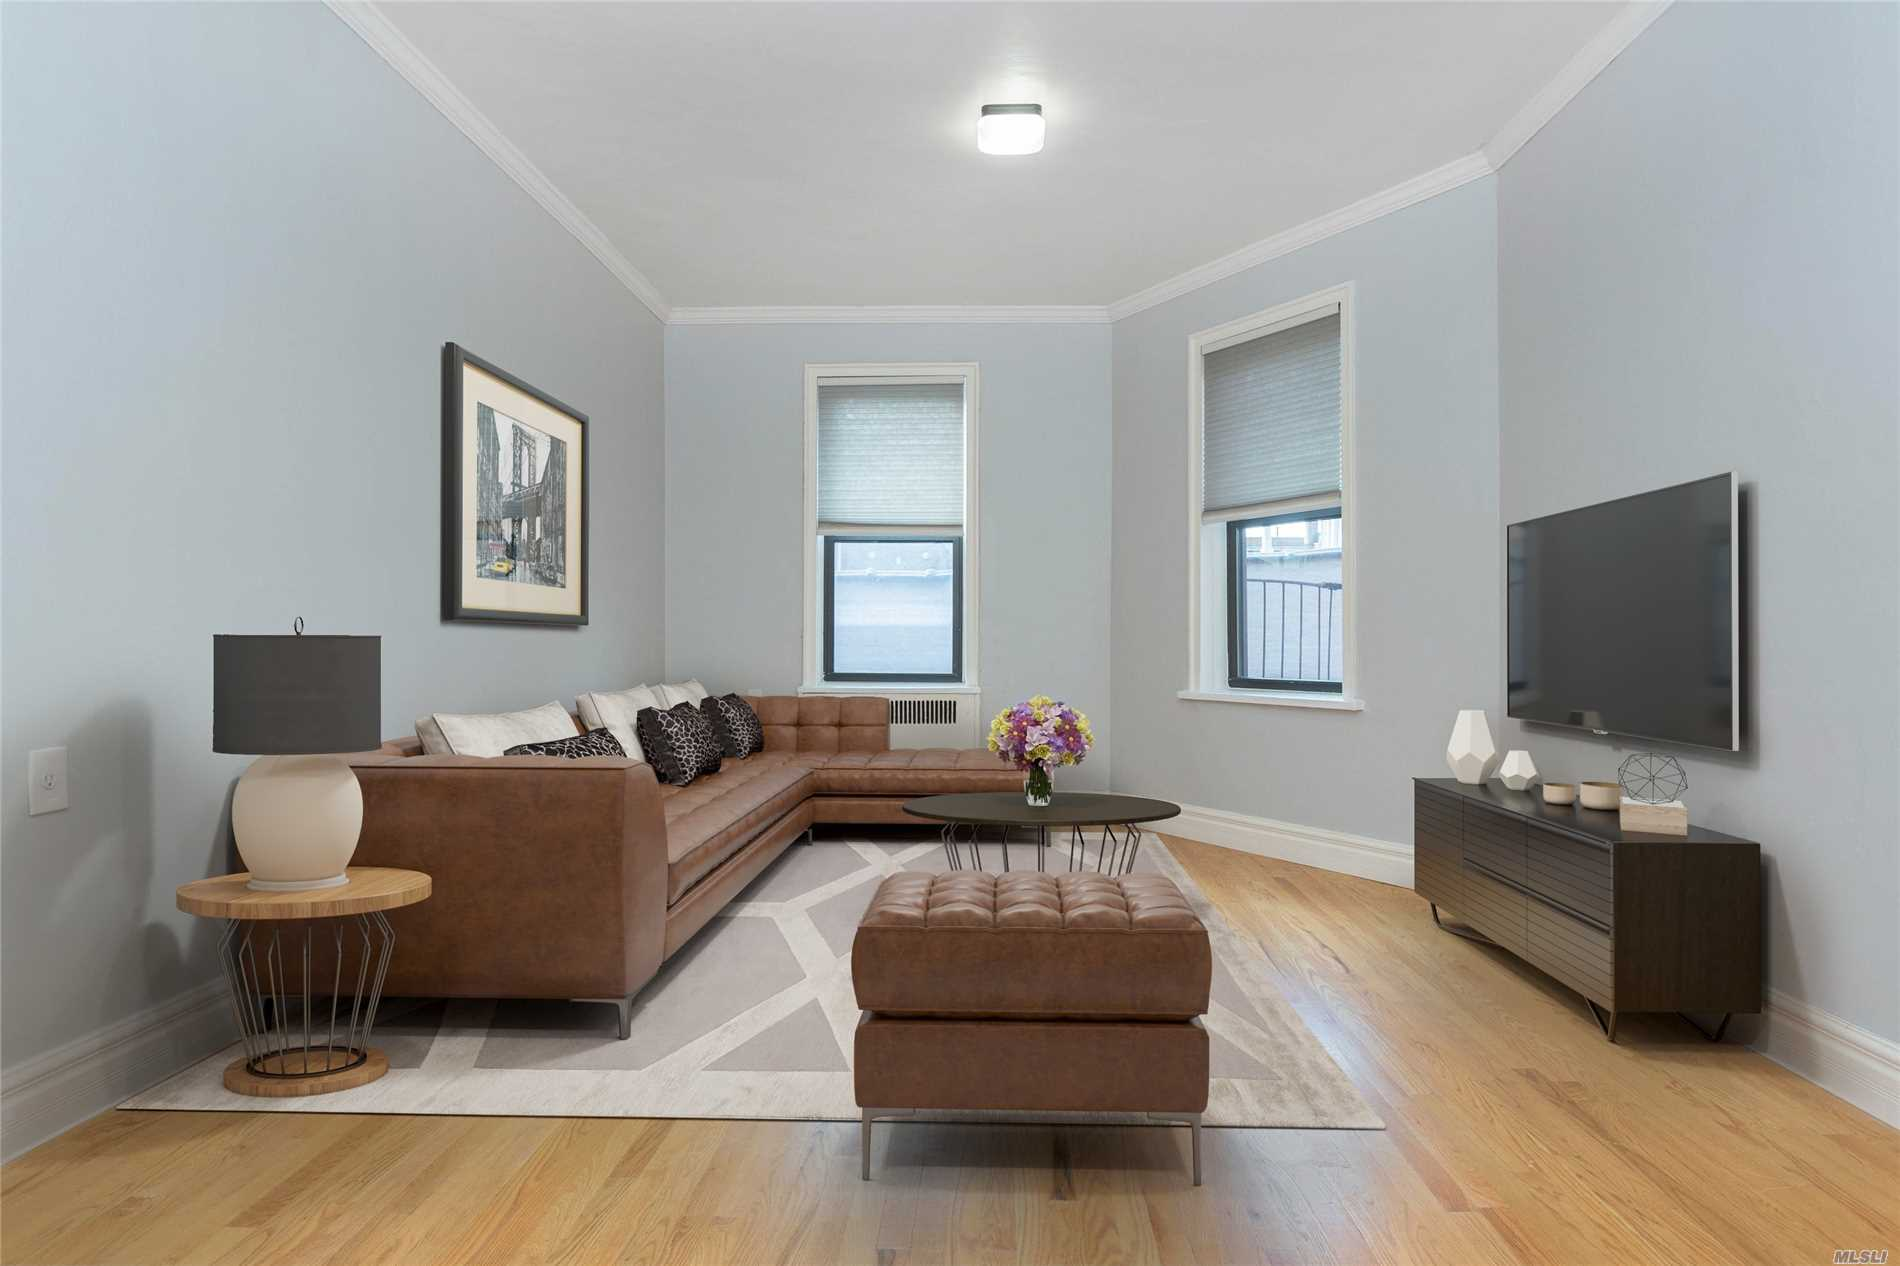 Quiet And Totally Updated, This Spacious 1Br Features Gleaming Hardwood Floors, Updated Kitchen With A Dishwasher And A Windowed Bath. The Unit Features The Classic High Ceilings And A Spacious Living Room, Entry Foyer And Kind Sized Bedroom With Extra Large Closet. Located On Near The Corner Of 30th Ave And 29th St, Everything Astoria Has To Offer Is Within A Few Blocks. The Colony Is A Sought After Building And Is Known For Being Extremely Well Cared For And Managed.